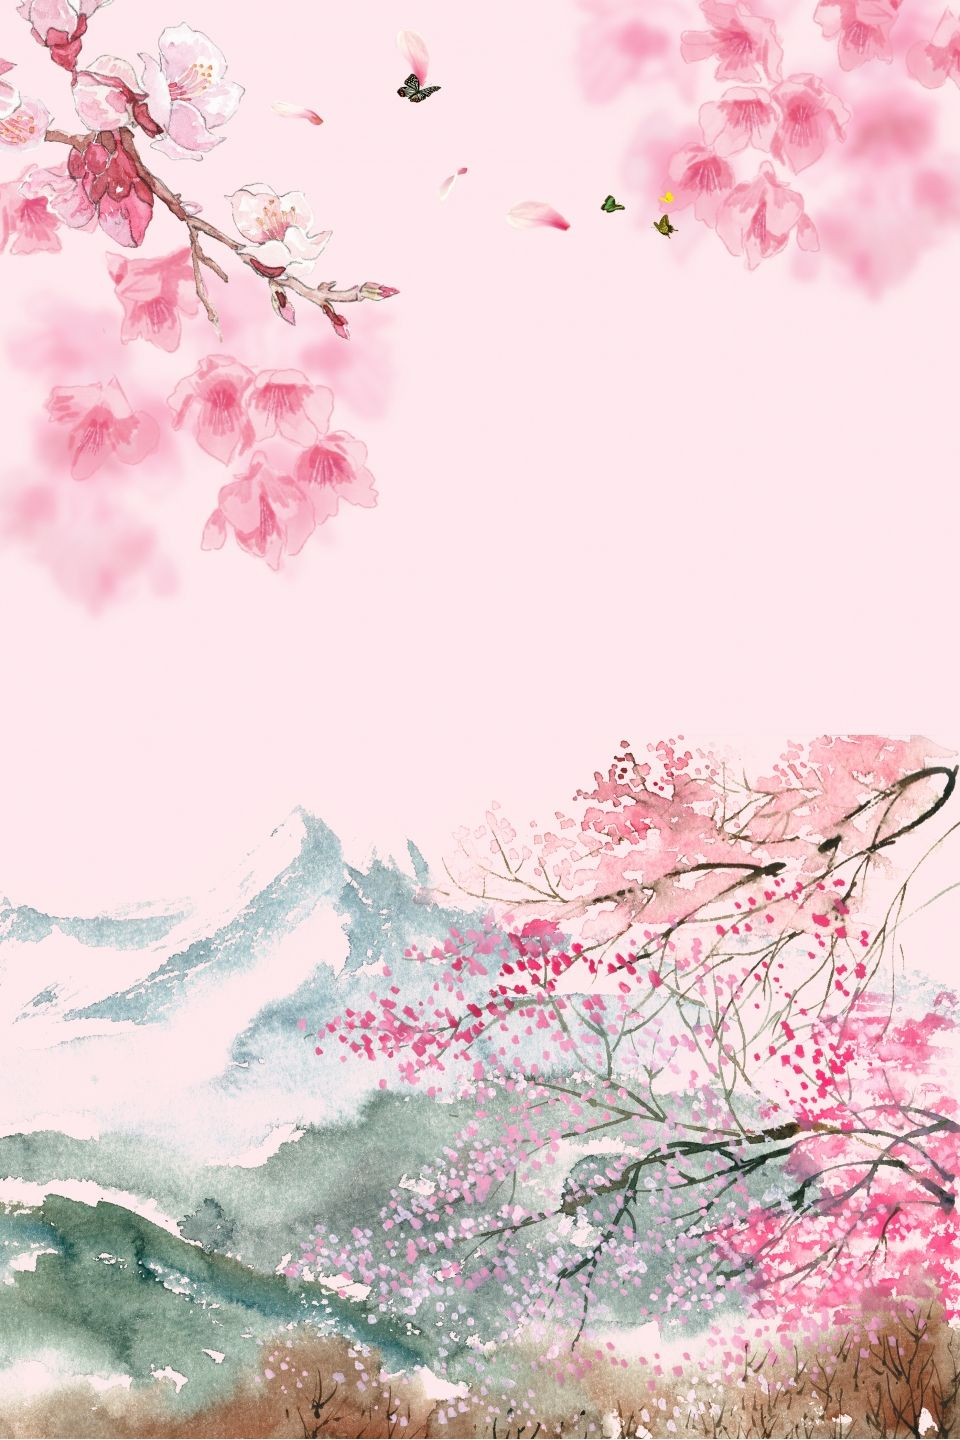 Pink Chinese Style Cherry Blossom Viewing Psd Layered H5 Background Material Cherry Blossom Painting Cherry Blossom Art Cherry Blossom Wallpaper